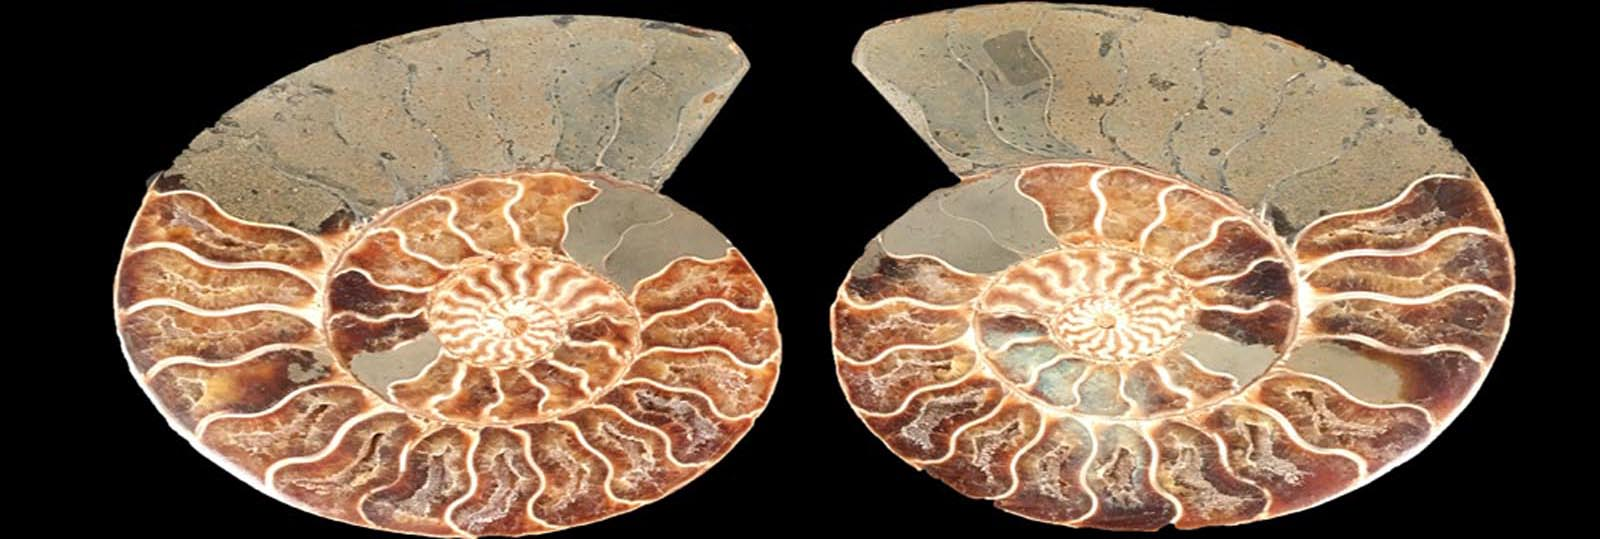 FossilsPlus.com — Quality Fossils for Collectors